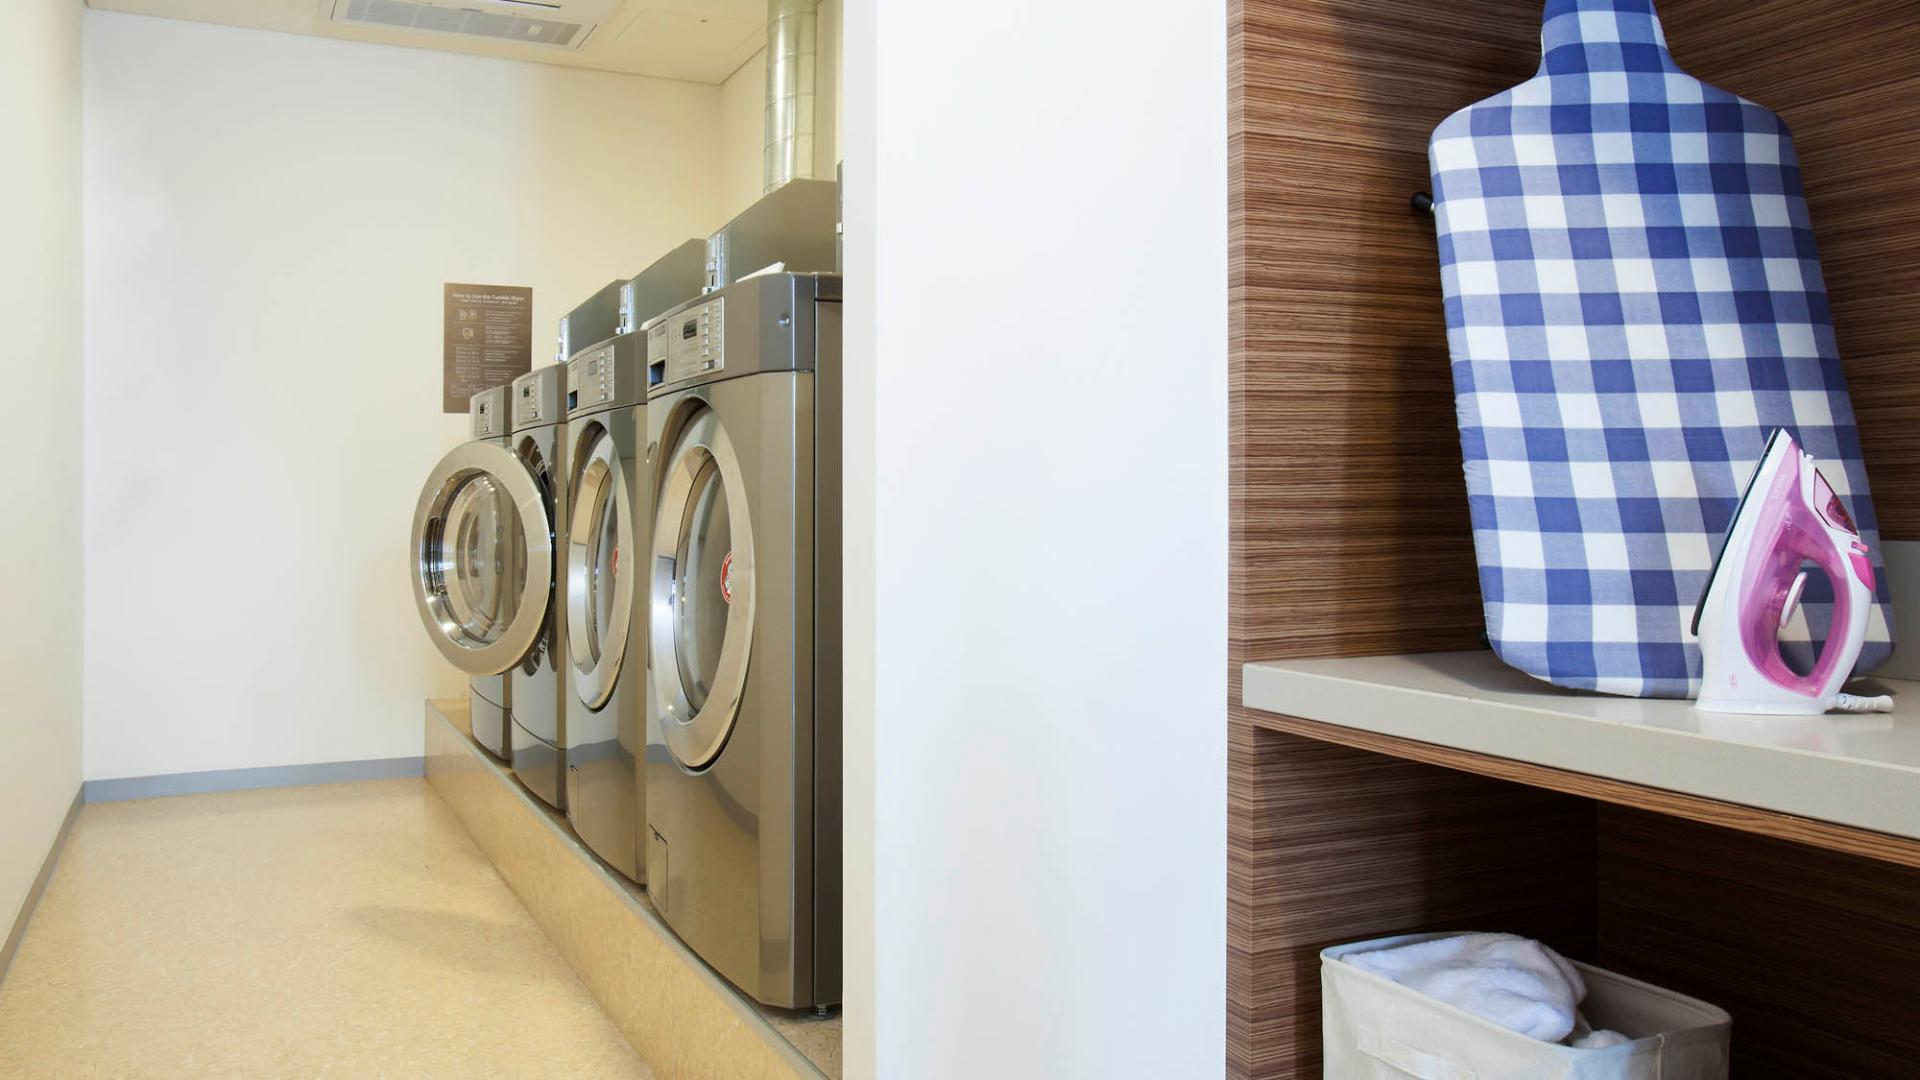 Lotte City Hotel Daejeon - Facilities - Services - Coin laundry